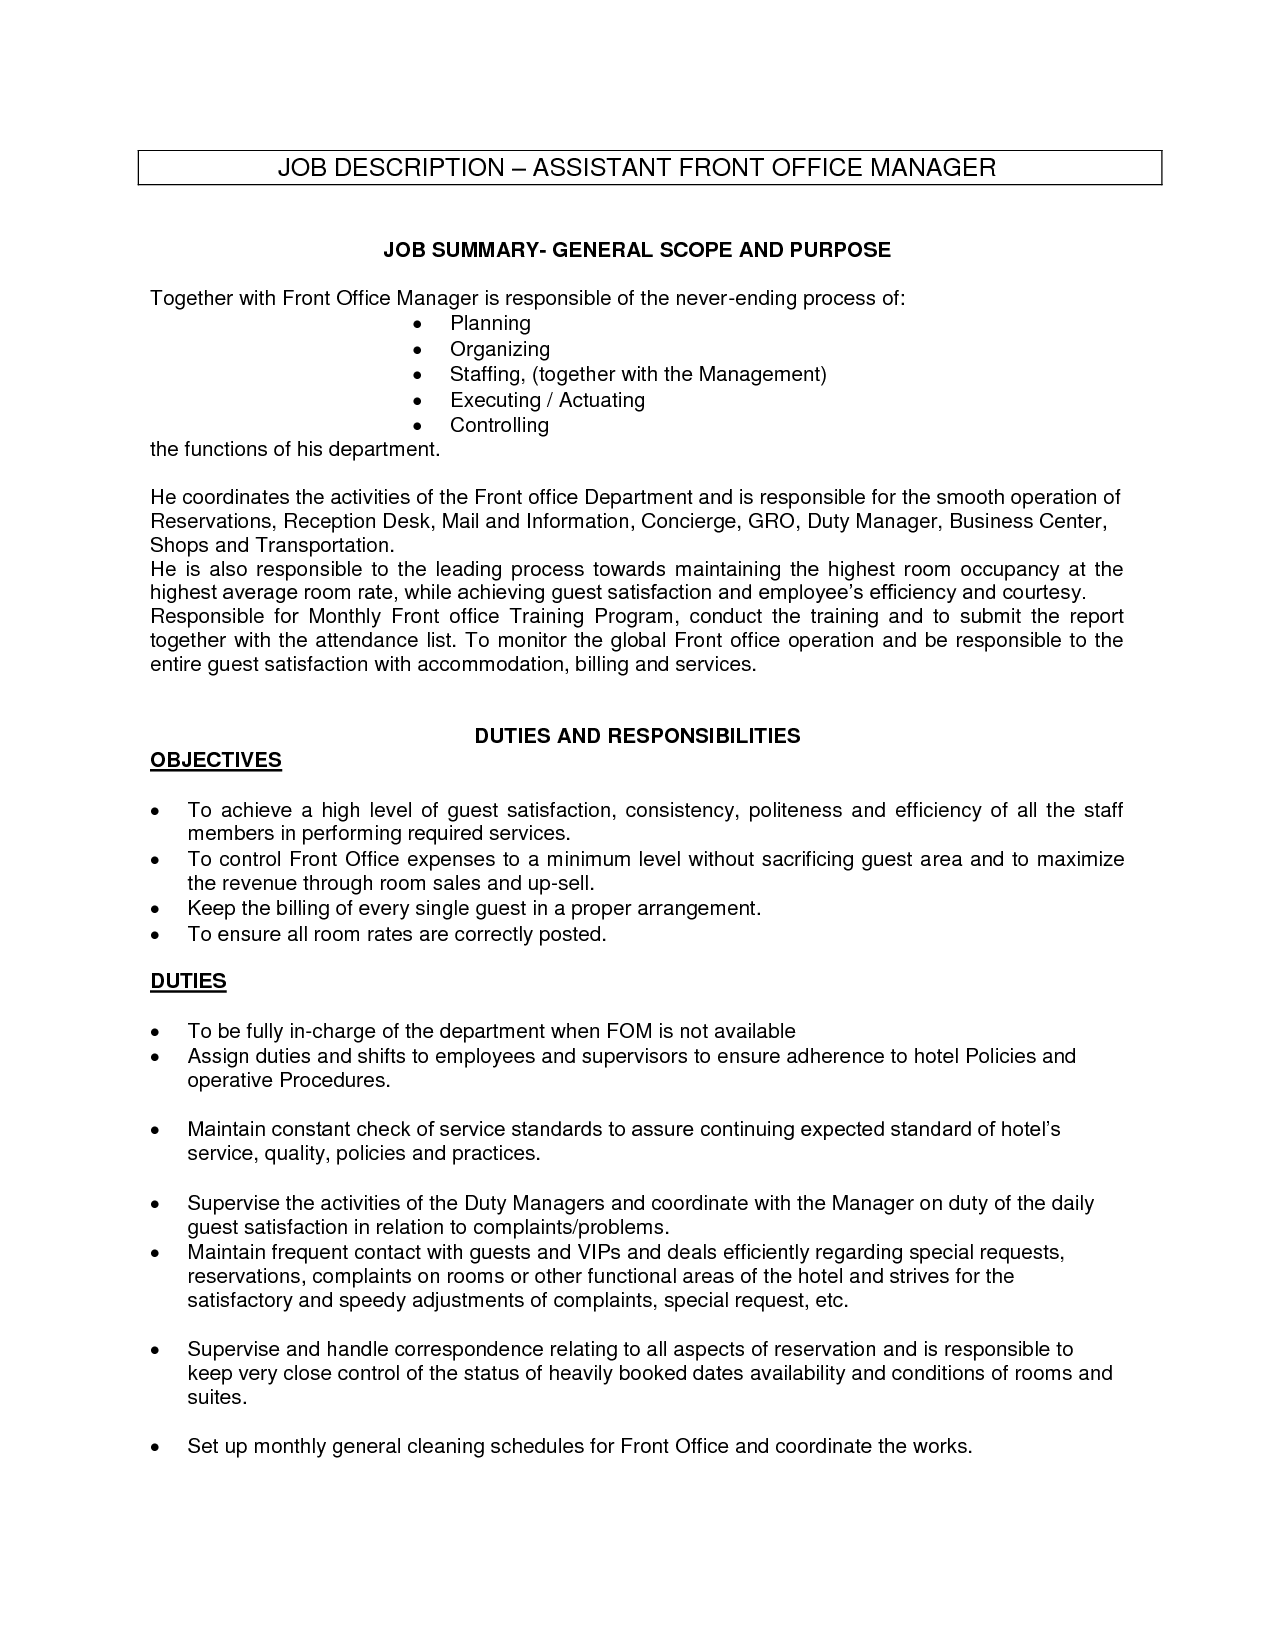 subway job duties resume cv cover letter fashion - Subway Job Description Resume